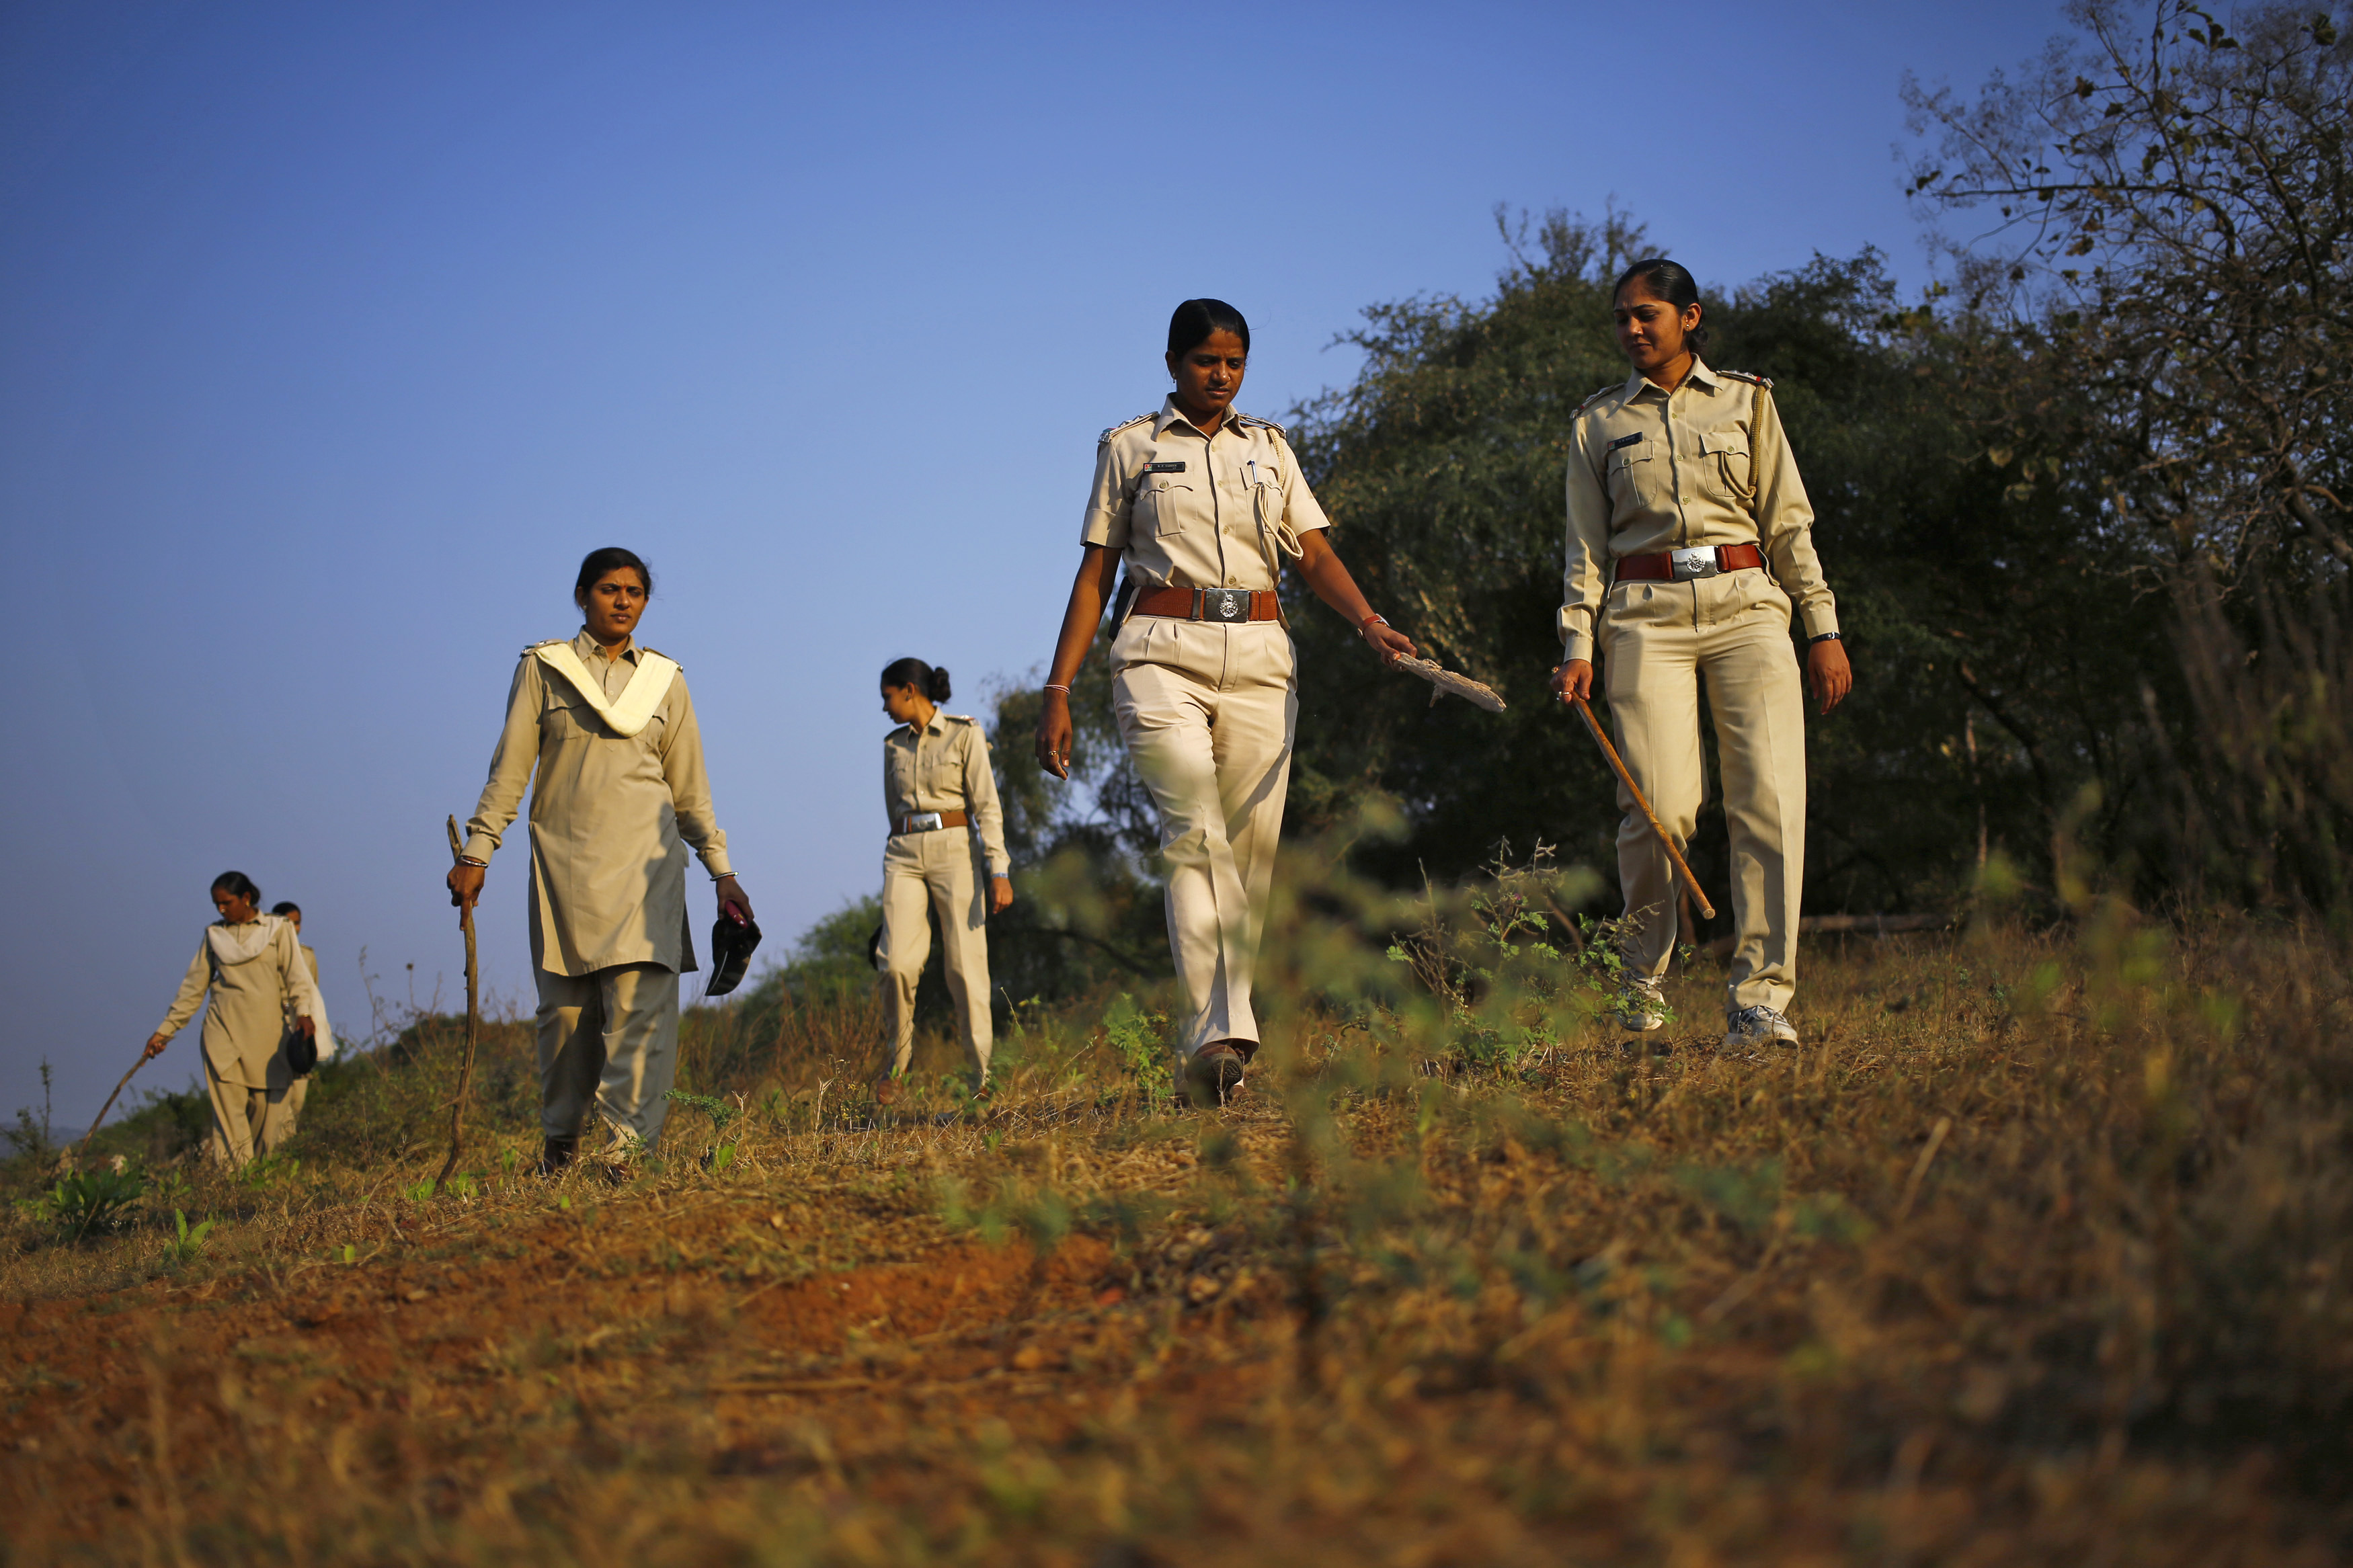 Forest guards carrying wooden sticks patrol the Gir National Park and Wildlife Sanctuary in Sasan